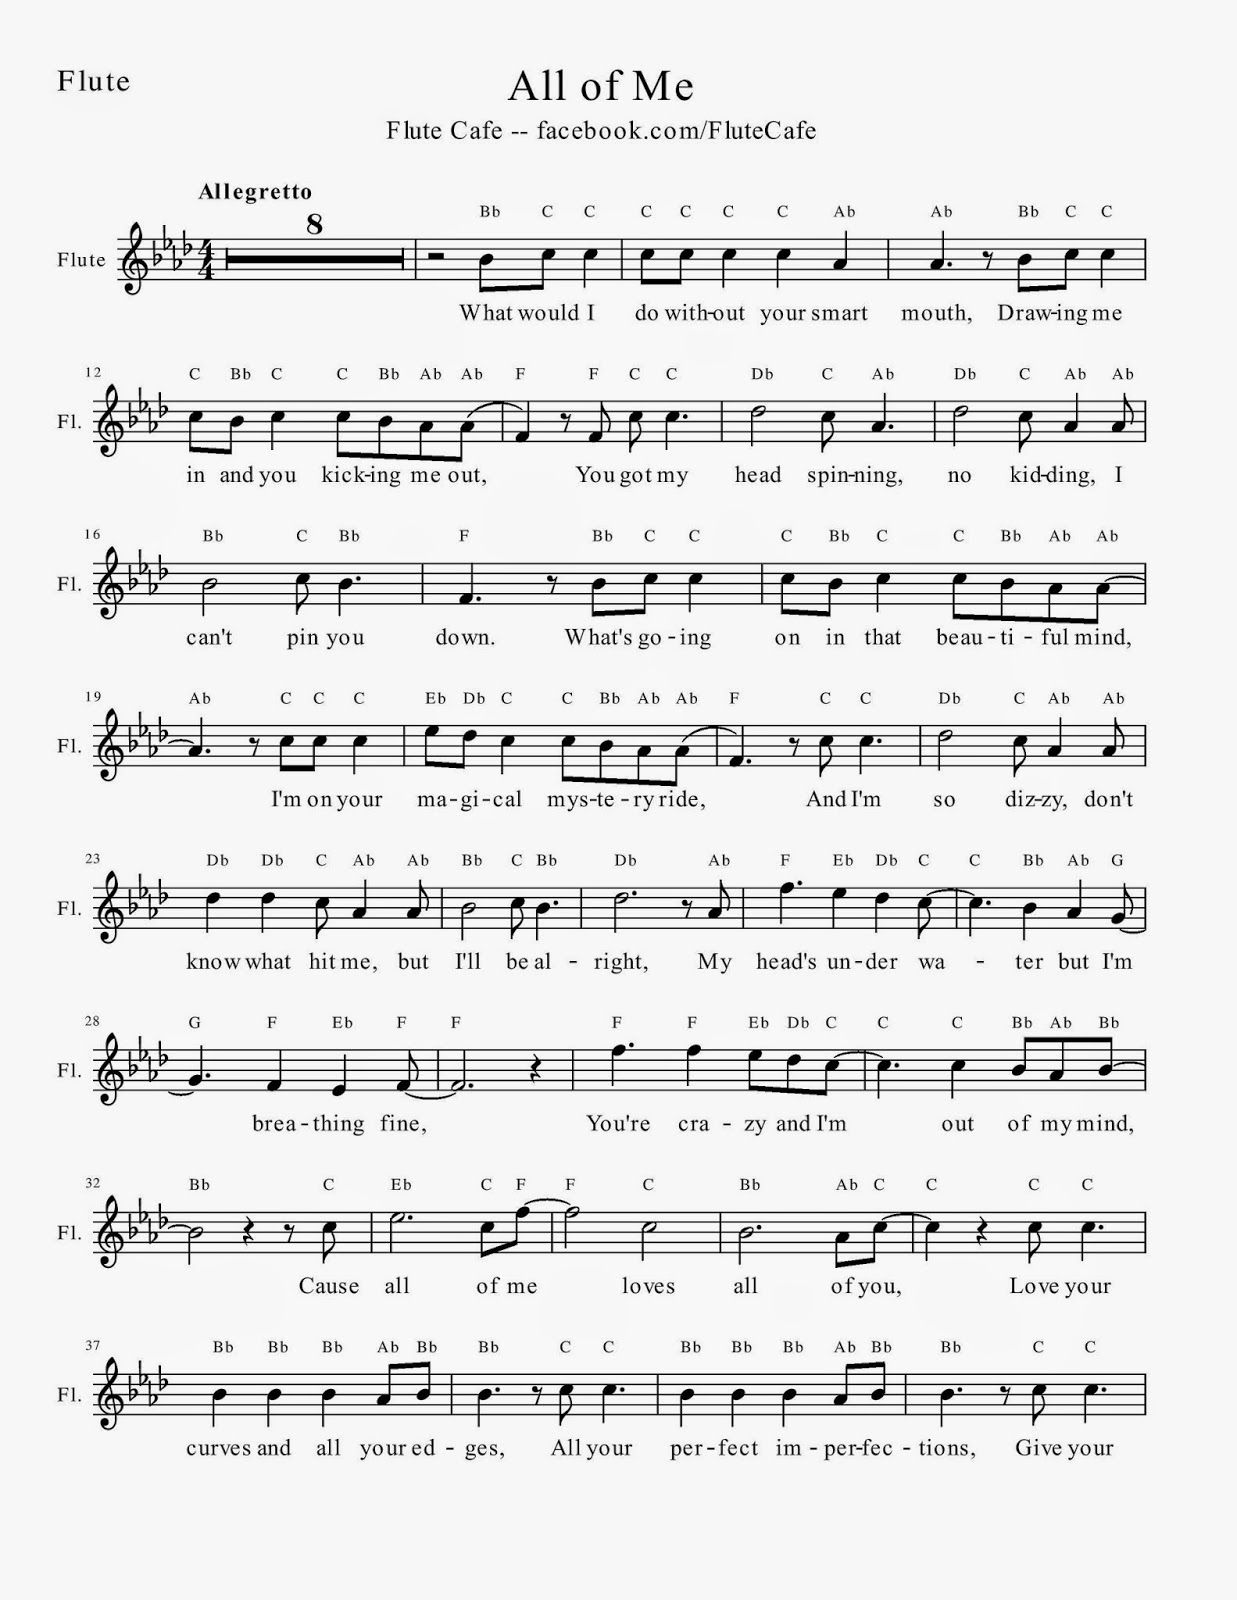 image about Printable Flute Sheet Music known as Flute Restaurant: All of Me (Flute Sheet Audio) songs Flute